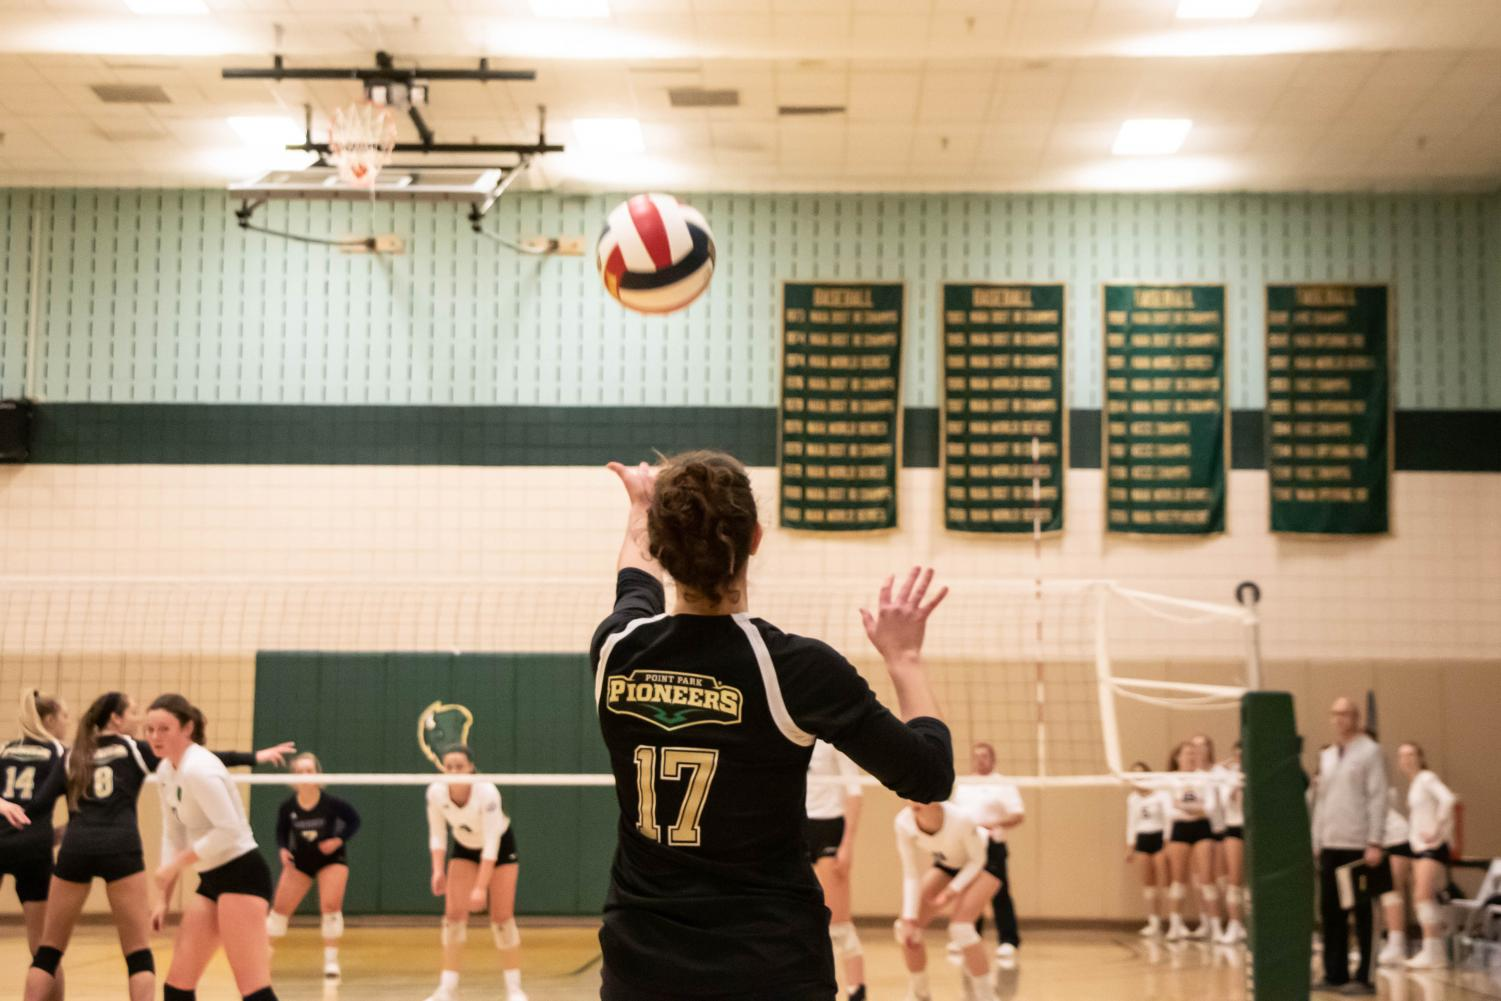 Senior Brittney Bianco gets ready to set the ball in a set against Asbury in the student center gym on Friday.